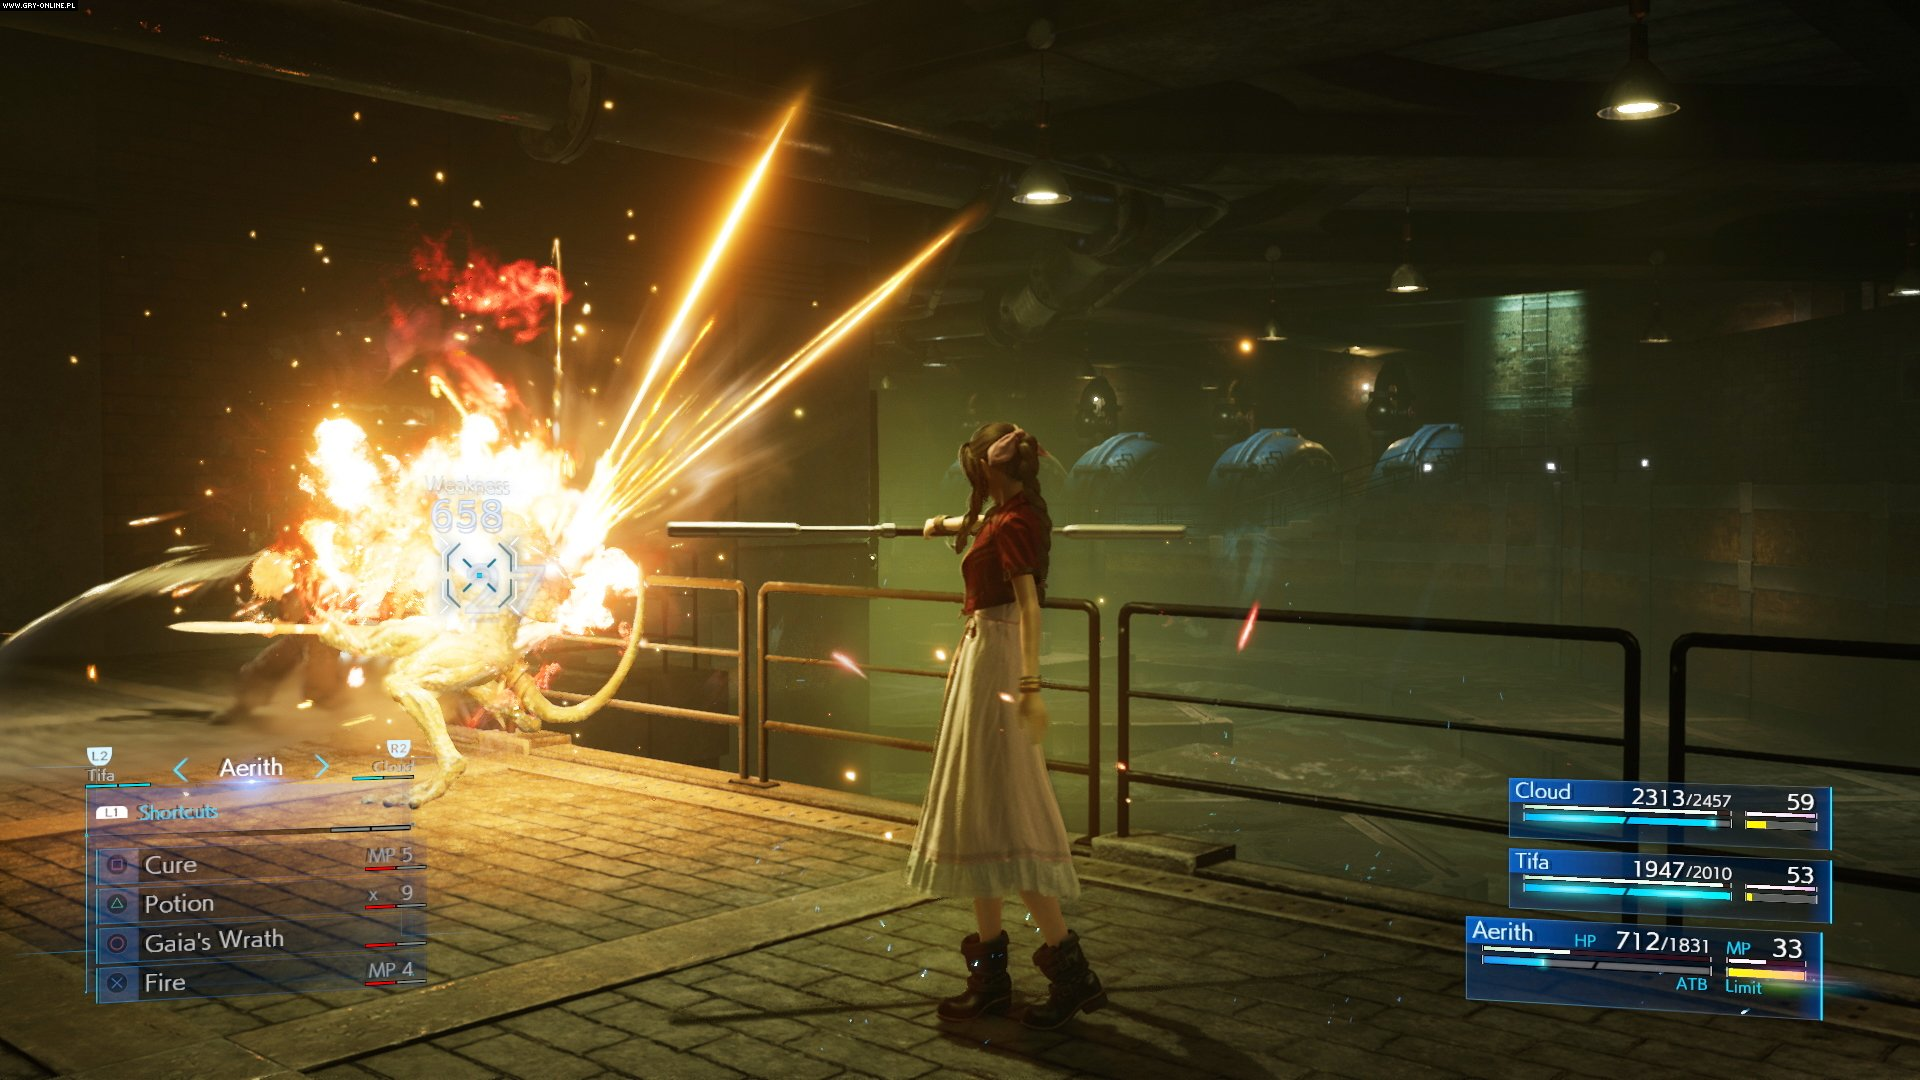 Final Fantasy VII Remake PS4 Games Image 62/86, Square-Enix / Eidos